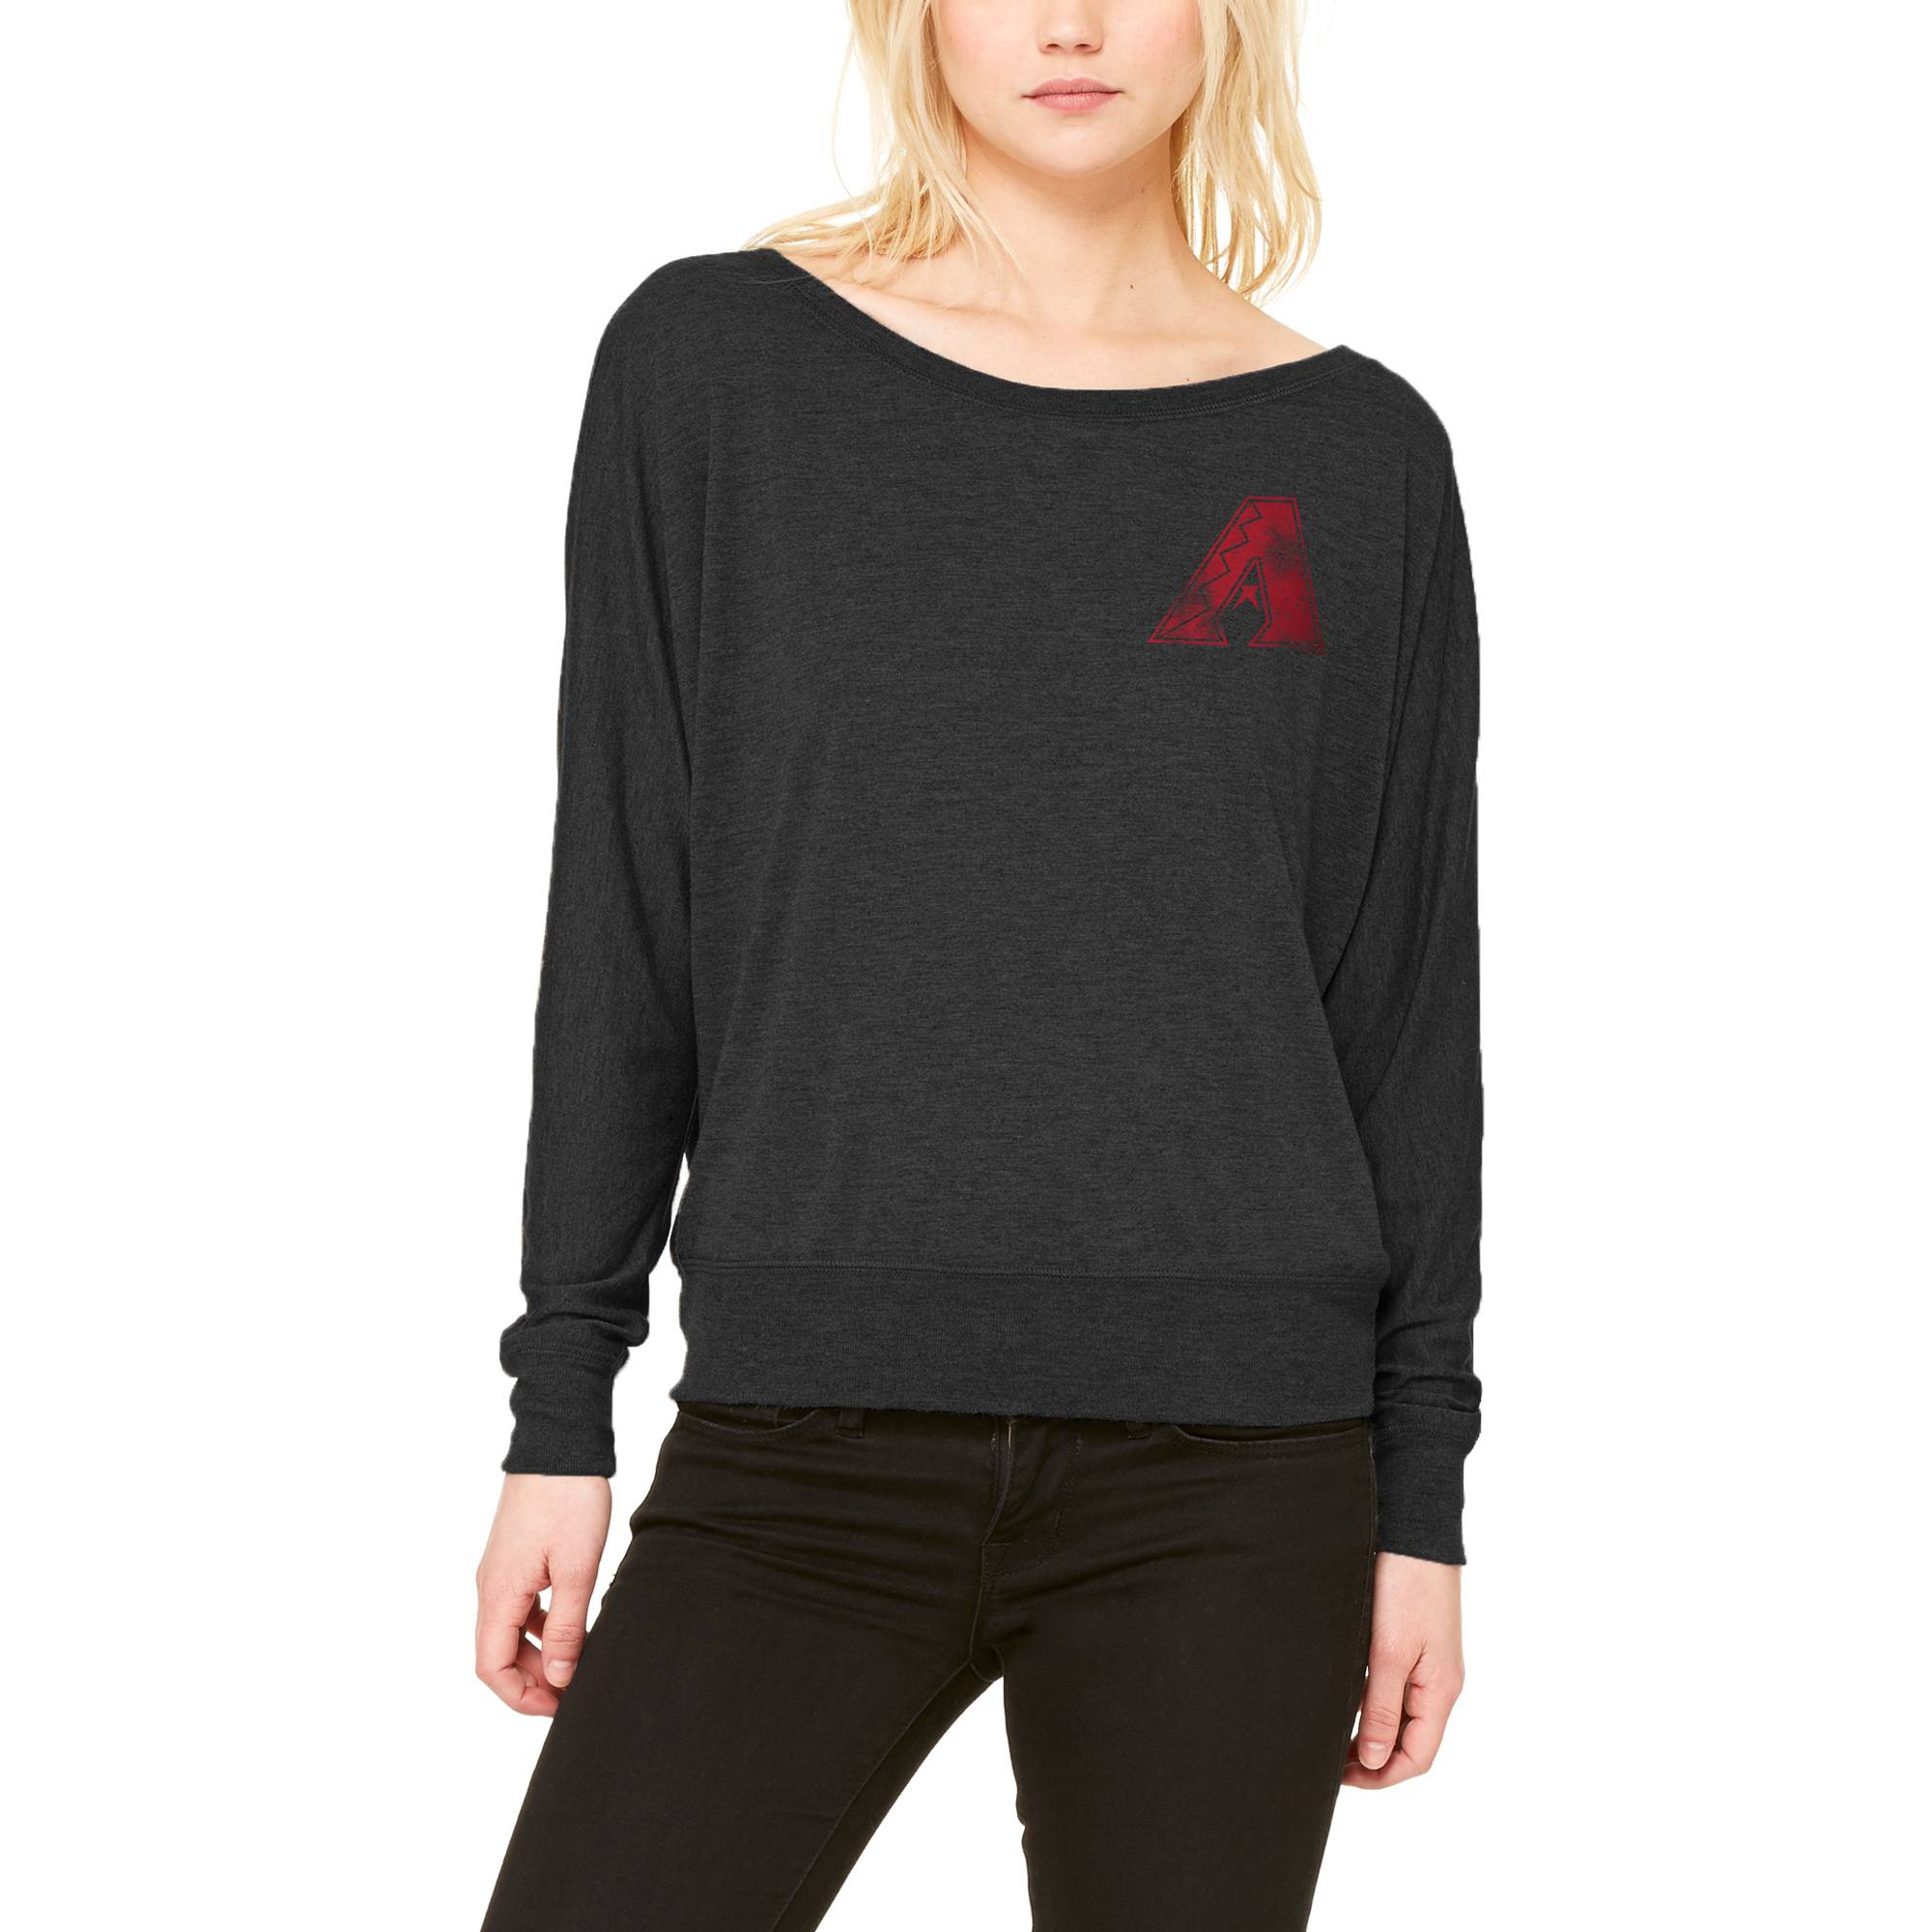 Arizona Diamondbacks Let Loose by RNL Women's Winning Off-Shoulder Long Sleeve T-Shirt - Black